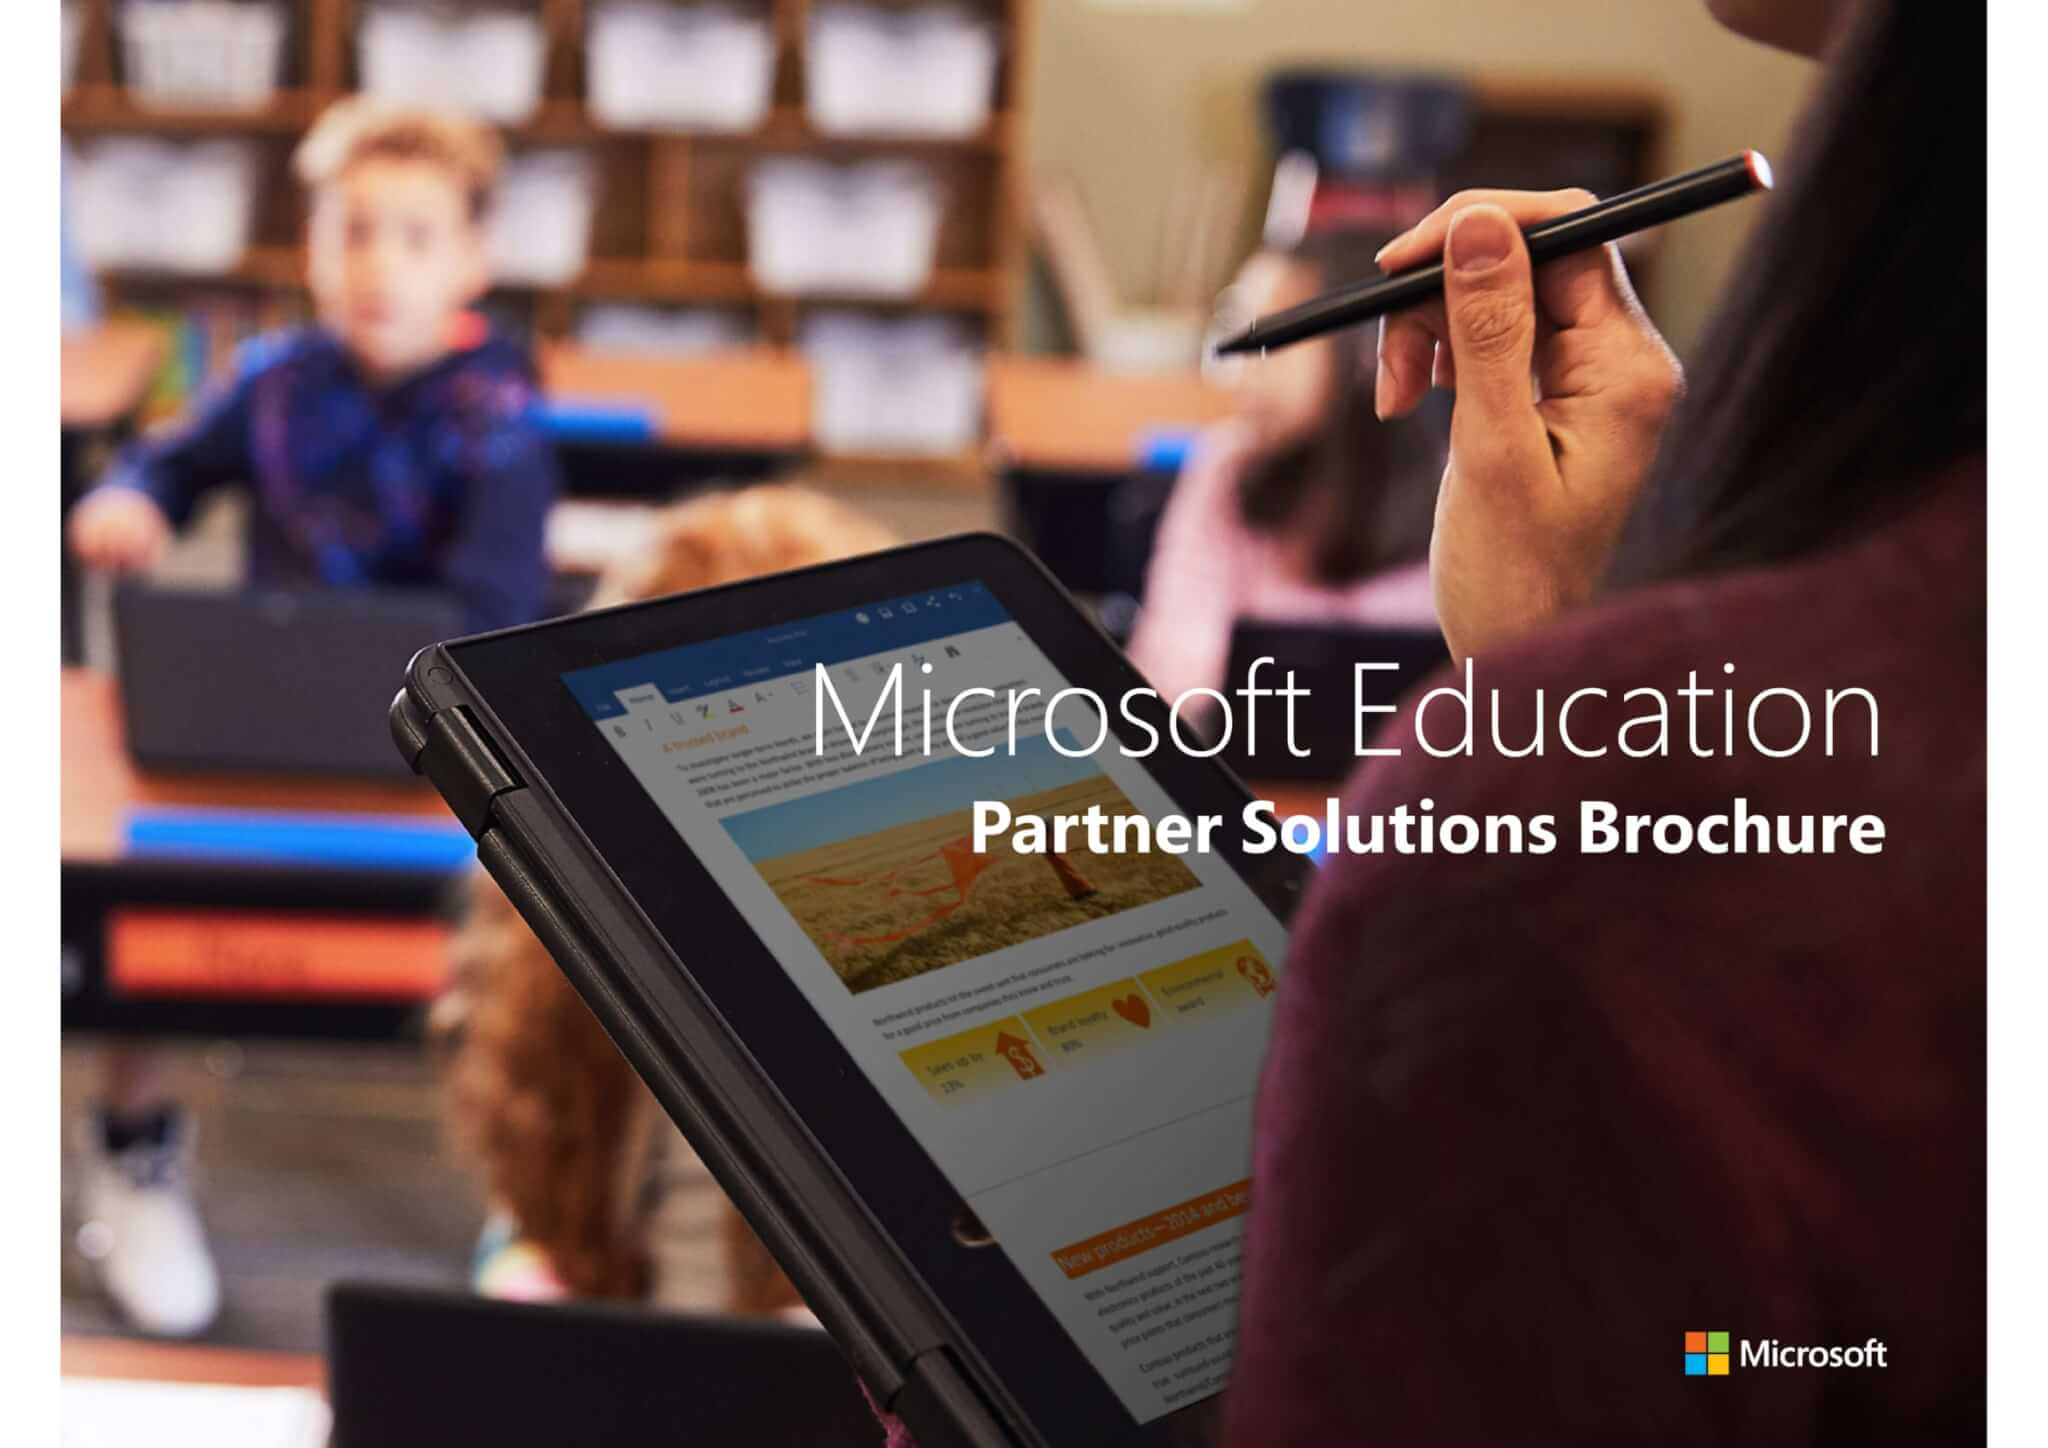 Microsoft Education Partner Solutions